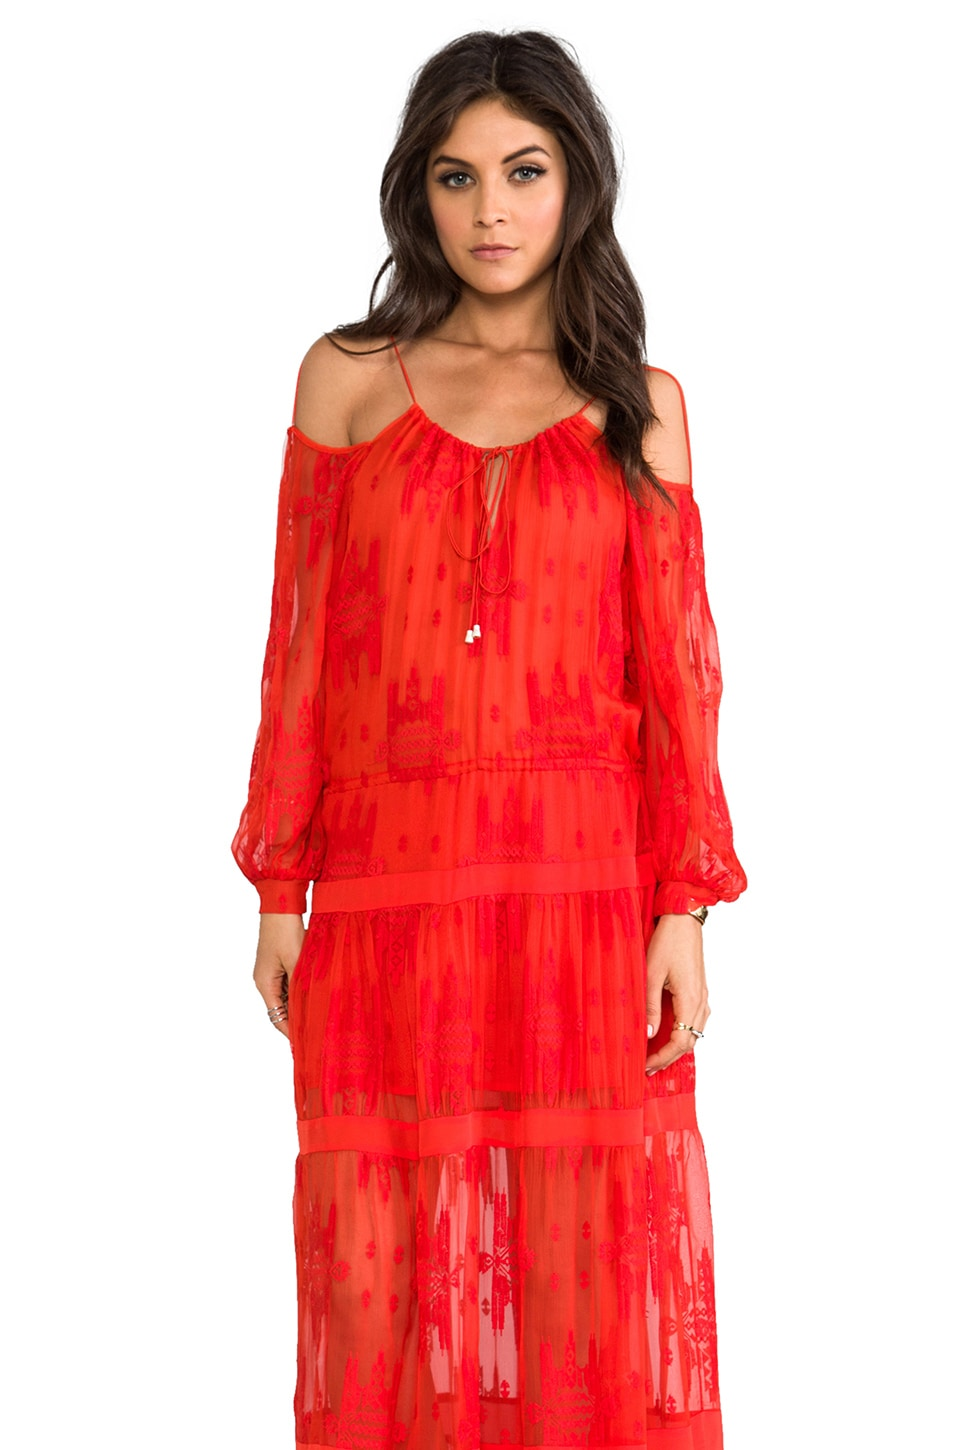 Alexis Cevilla Dress in Red Orange Embroidery